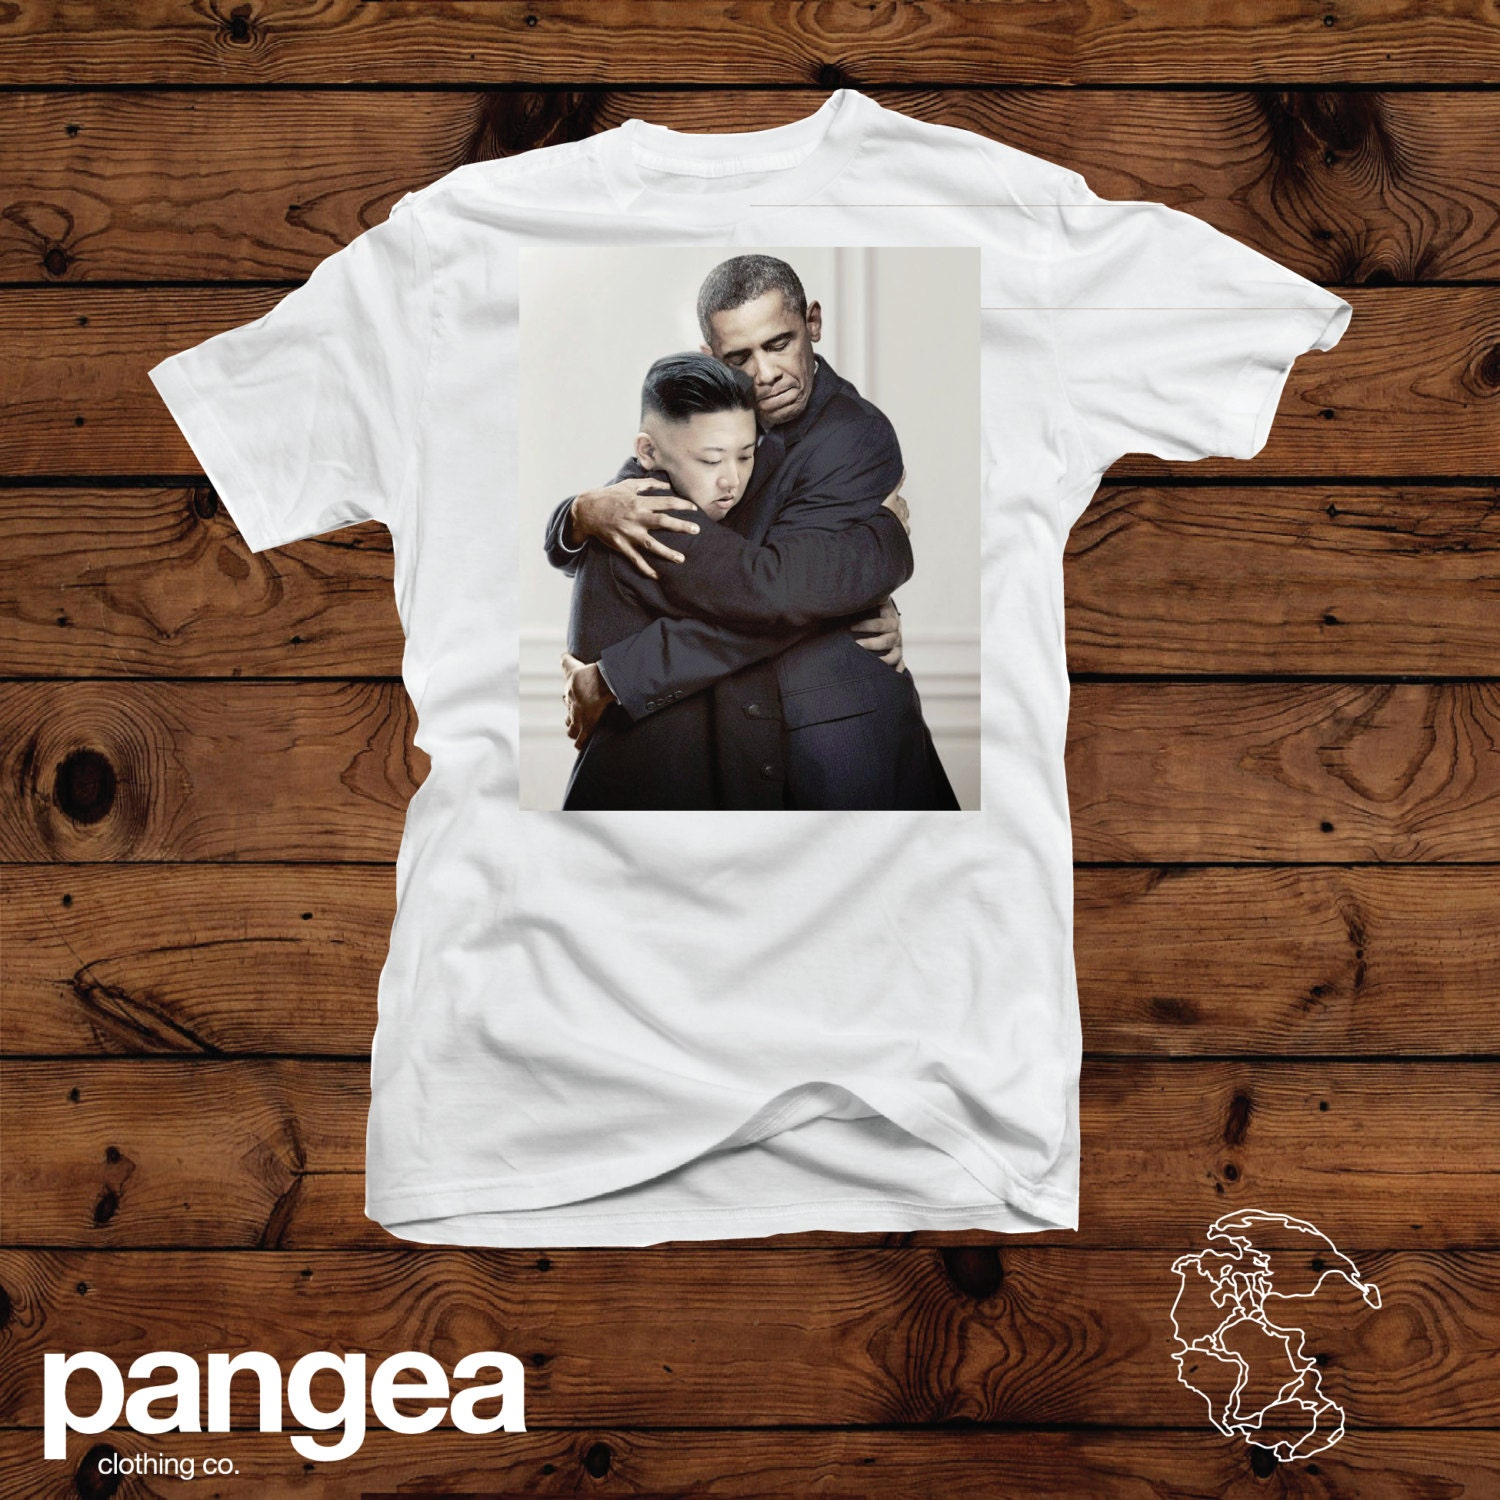 obama and kim jong un hugging t shirt by pangeaprinting on etsy. Black Bedroom Furniture Sets. Home Design Ideas